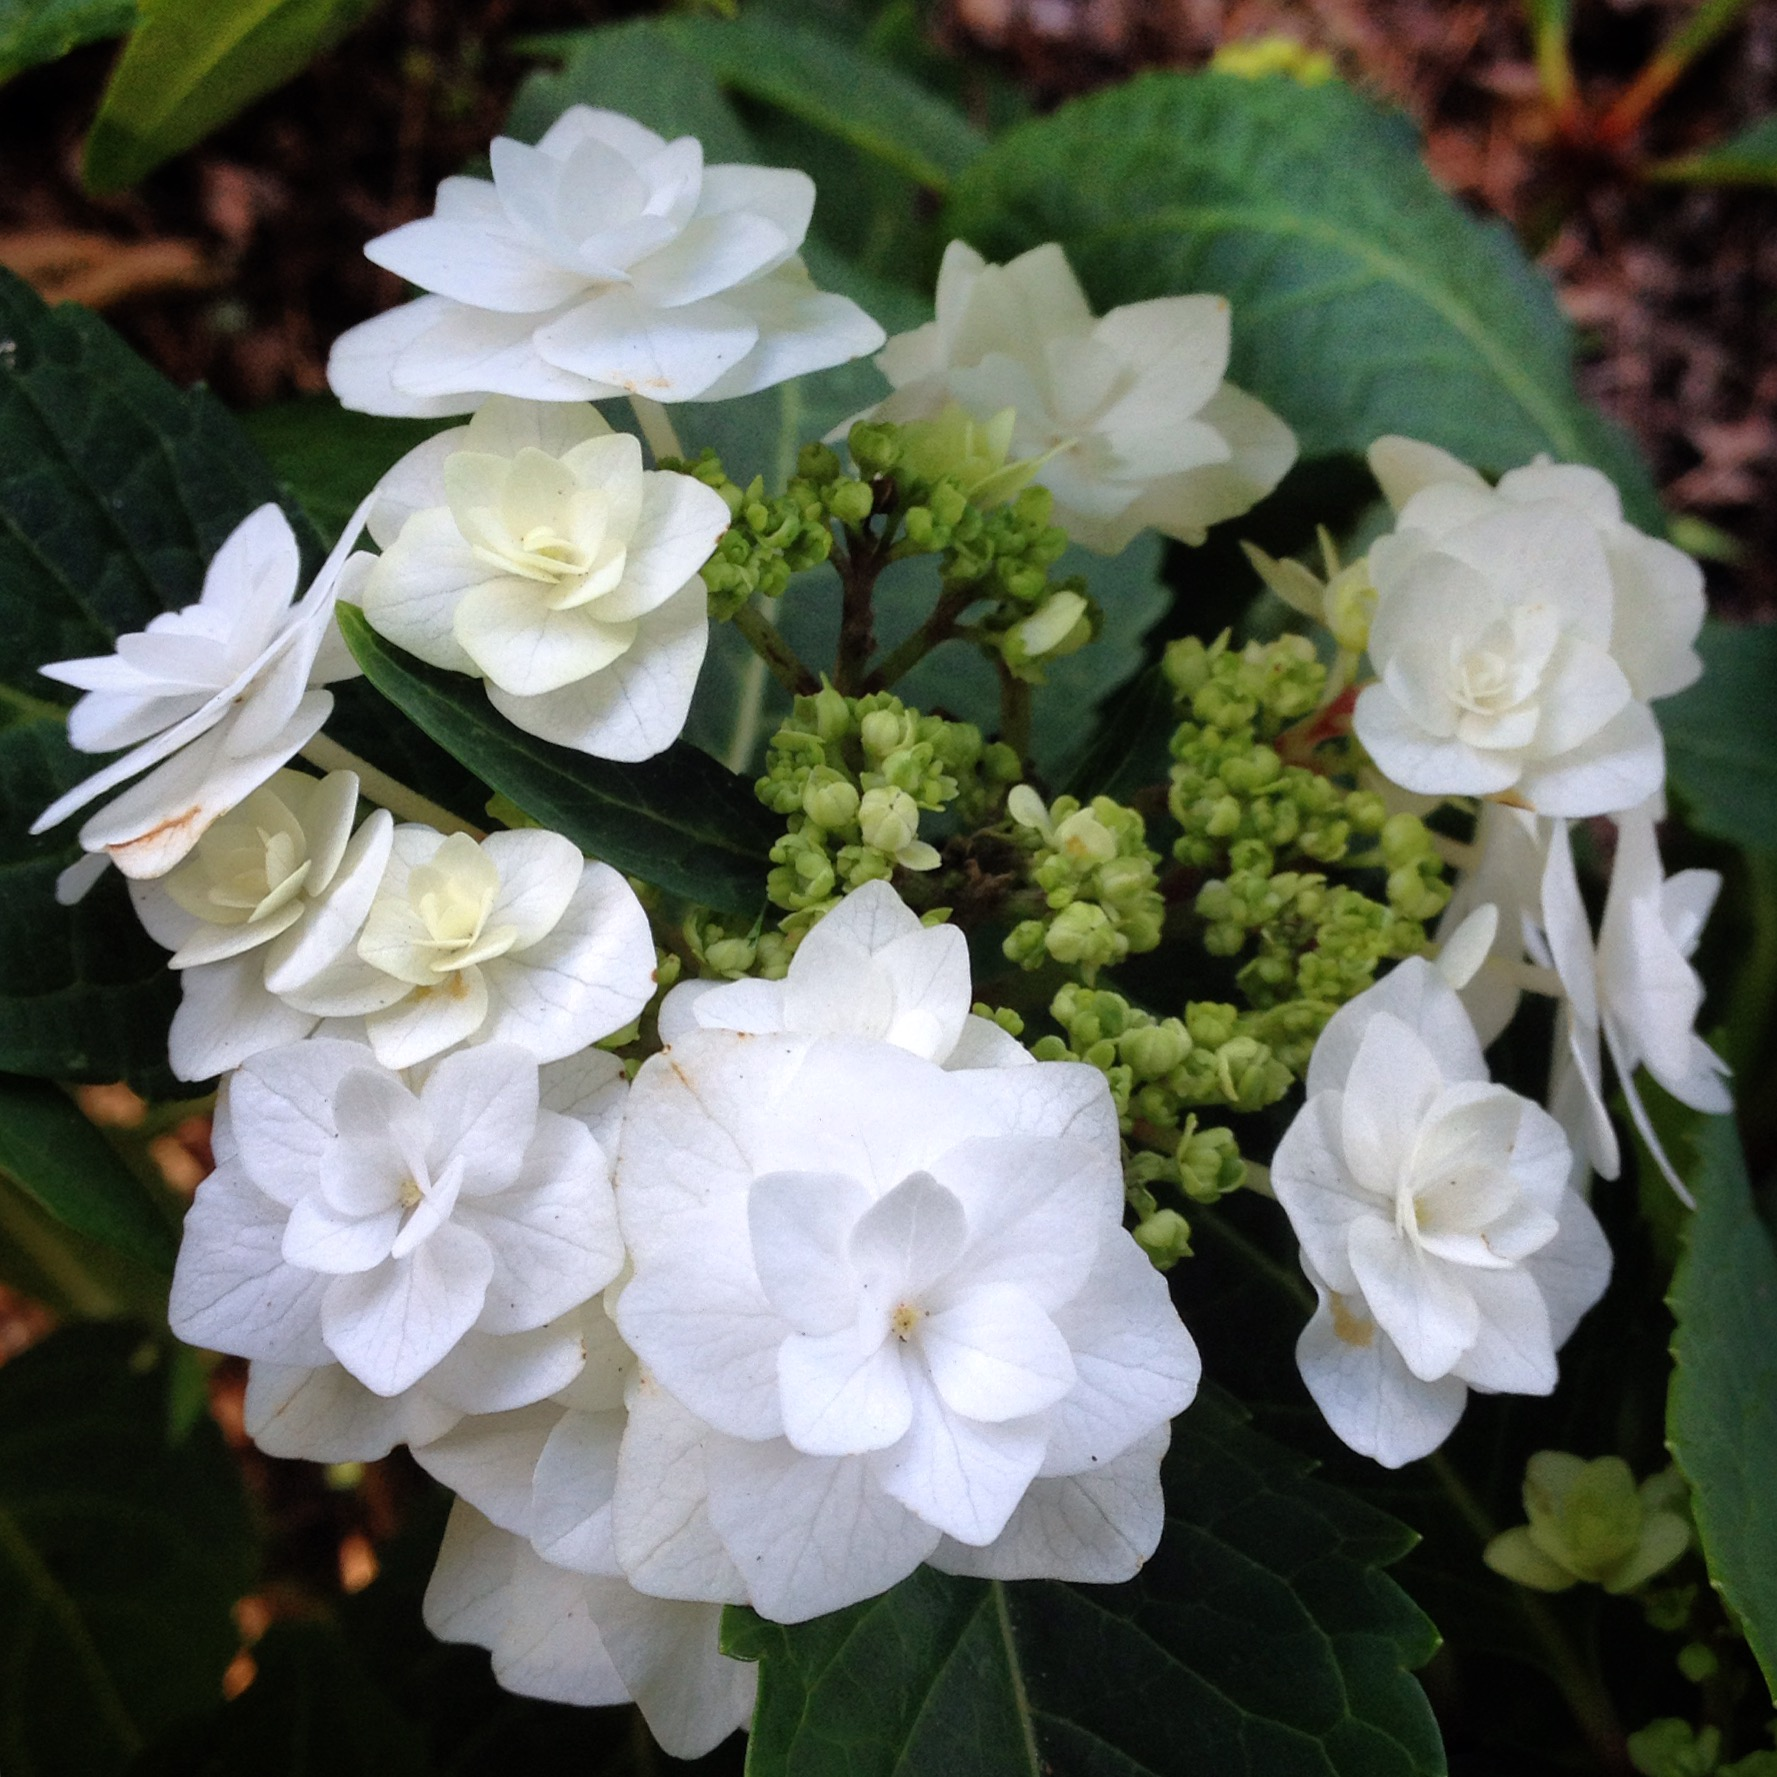 Hydrangea Macrophylla Double Delights Wedding Gown Has Delicate Blooms That Form Ruffles Around The Flower Head